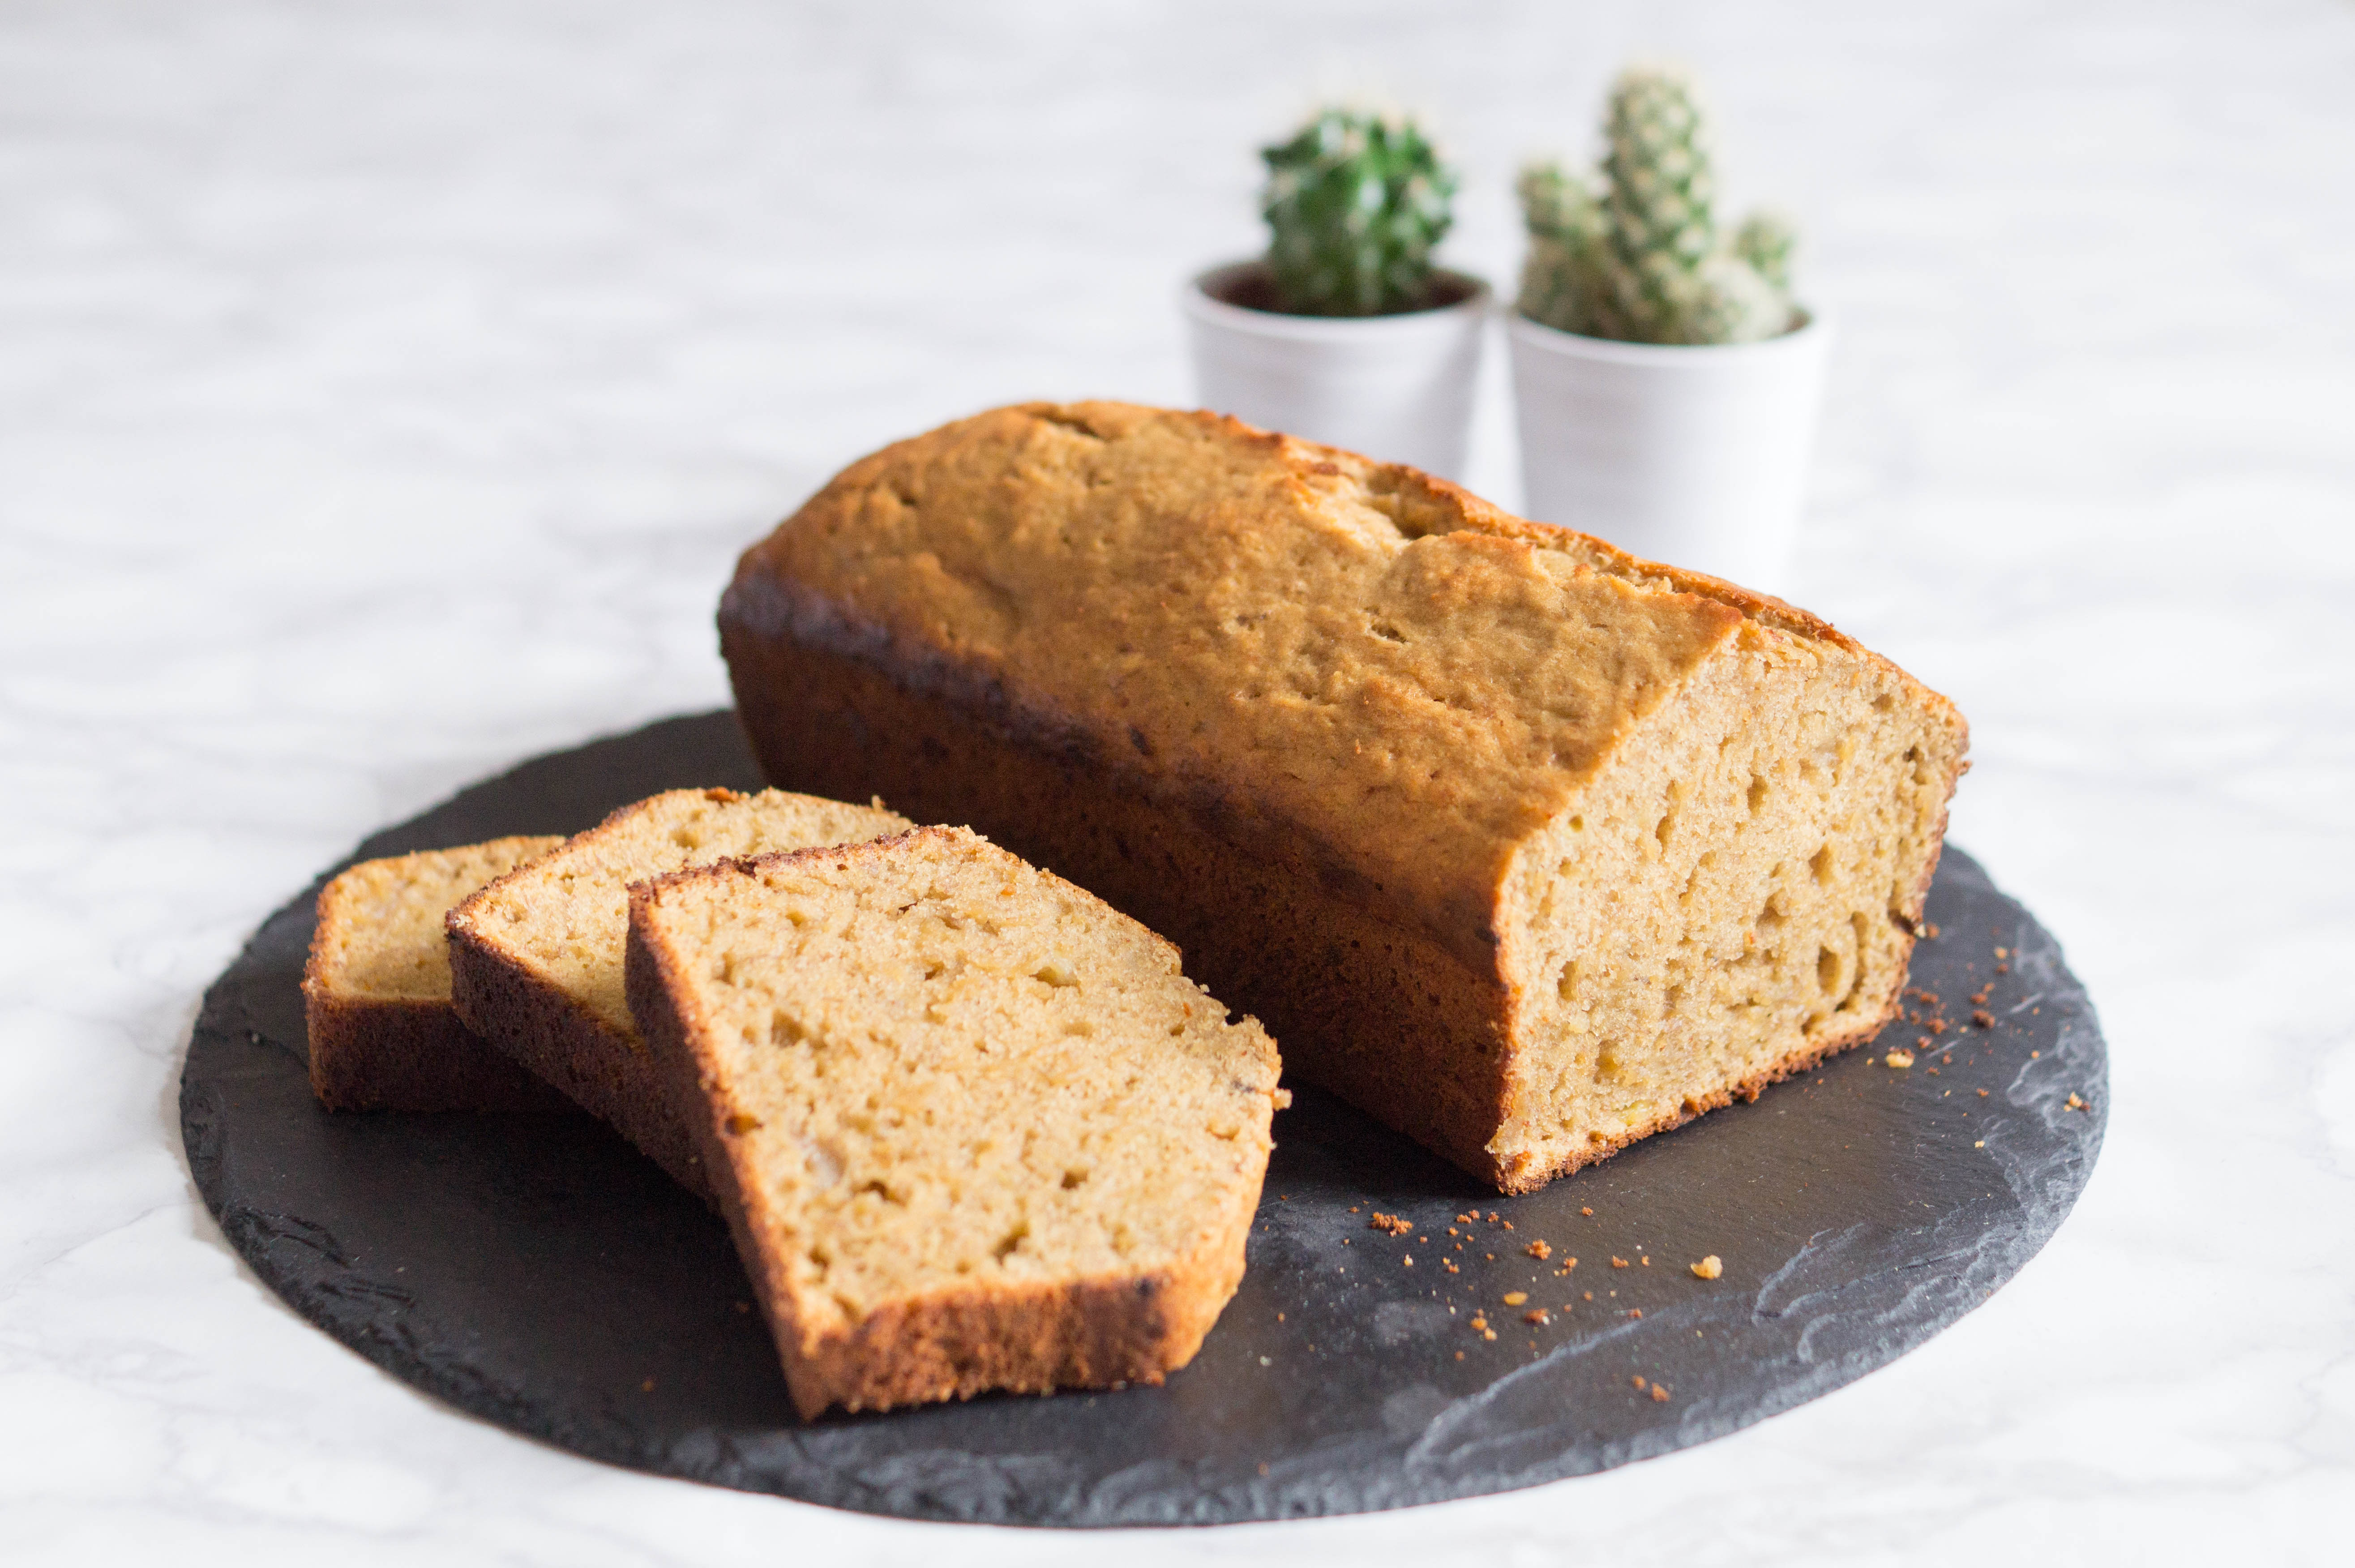 baking banana bread recipe